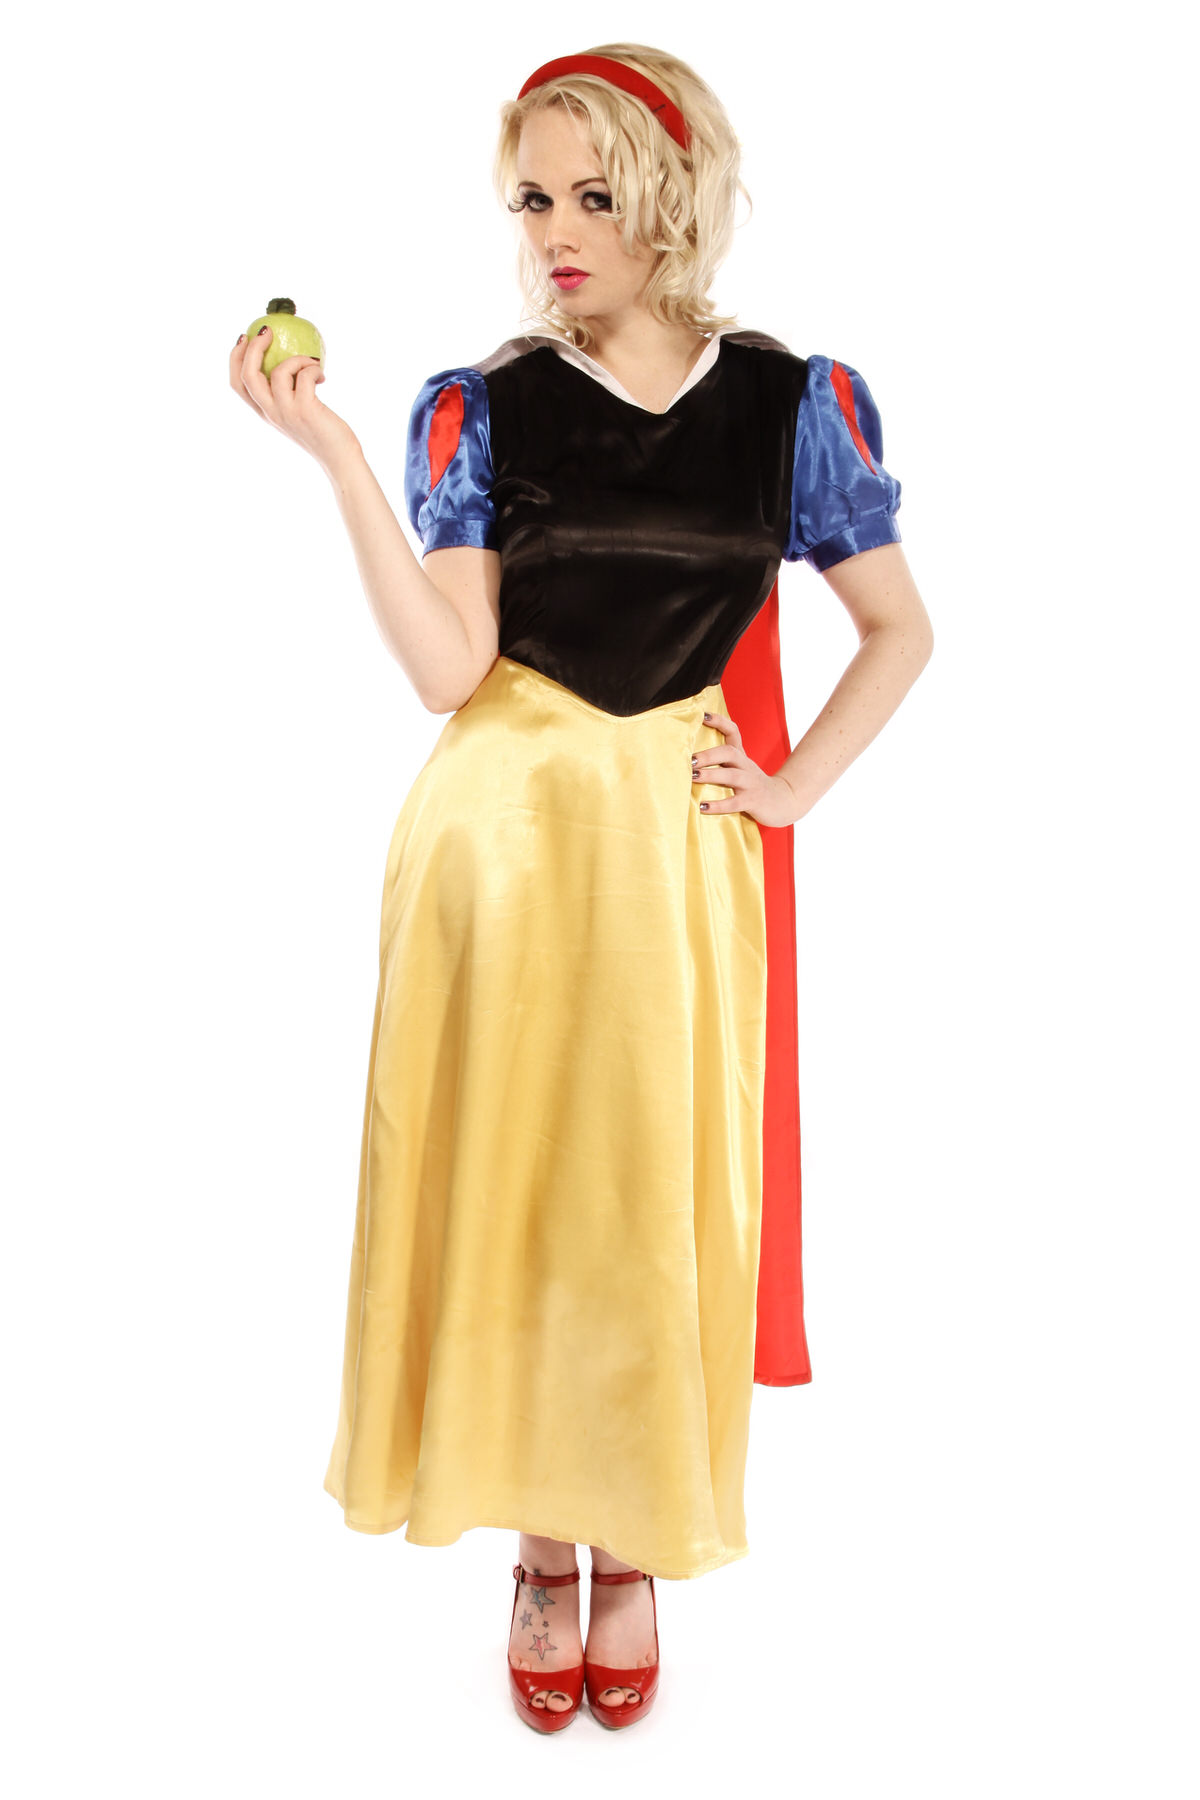 SNOW WHITE LONG DRESS COSTUME W SATIN CAPE